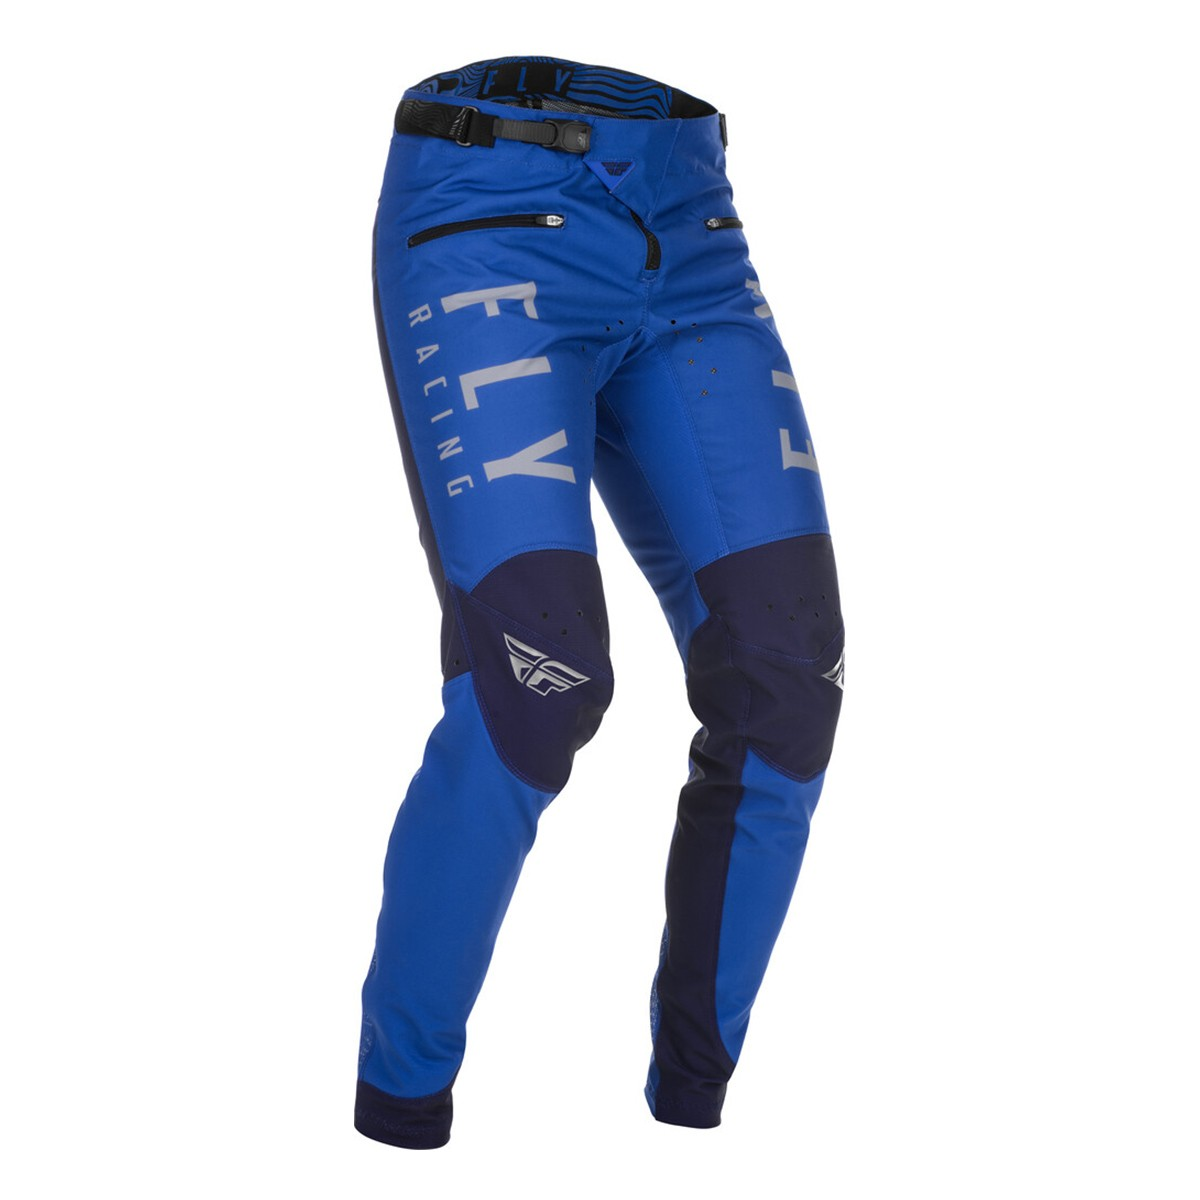 FLY KINETIC BICYCLE 2021 PANTS